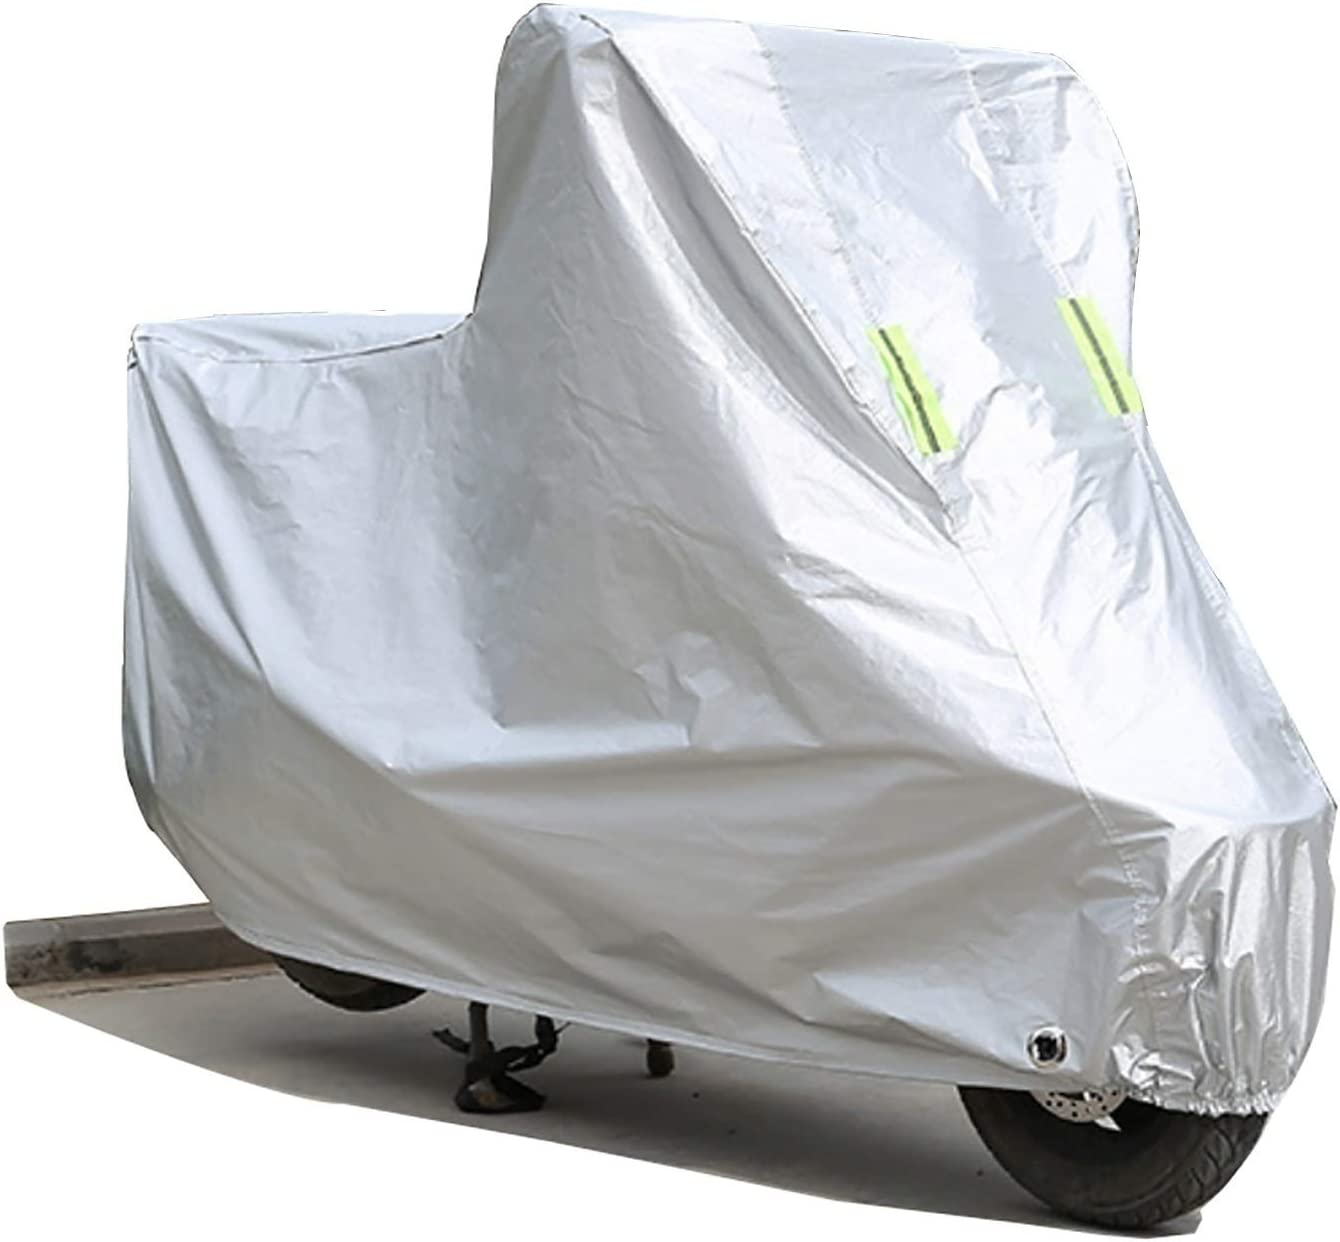 Rapid rise HEQCG Motorcycle Cover Compatible Oklahoma City Mall with Covers C 4 BMW